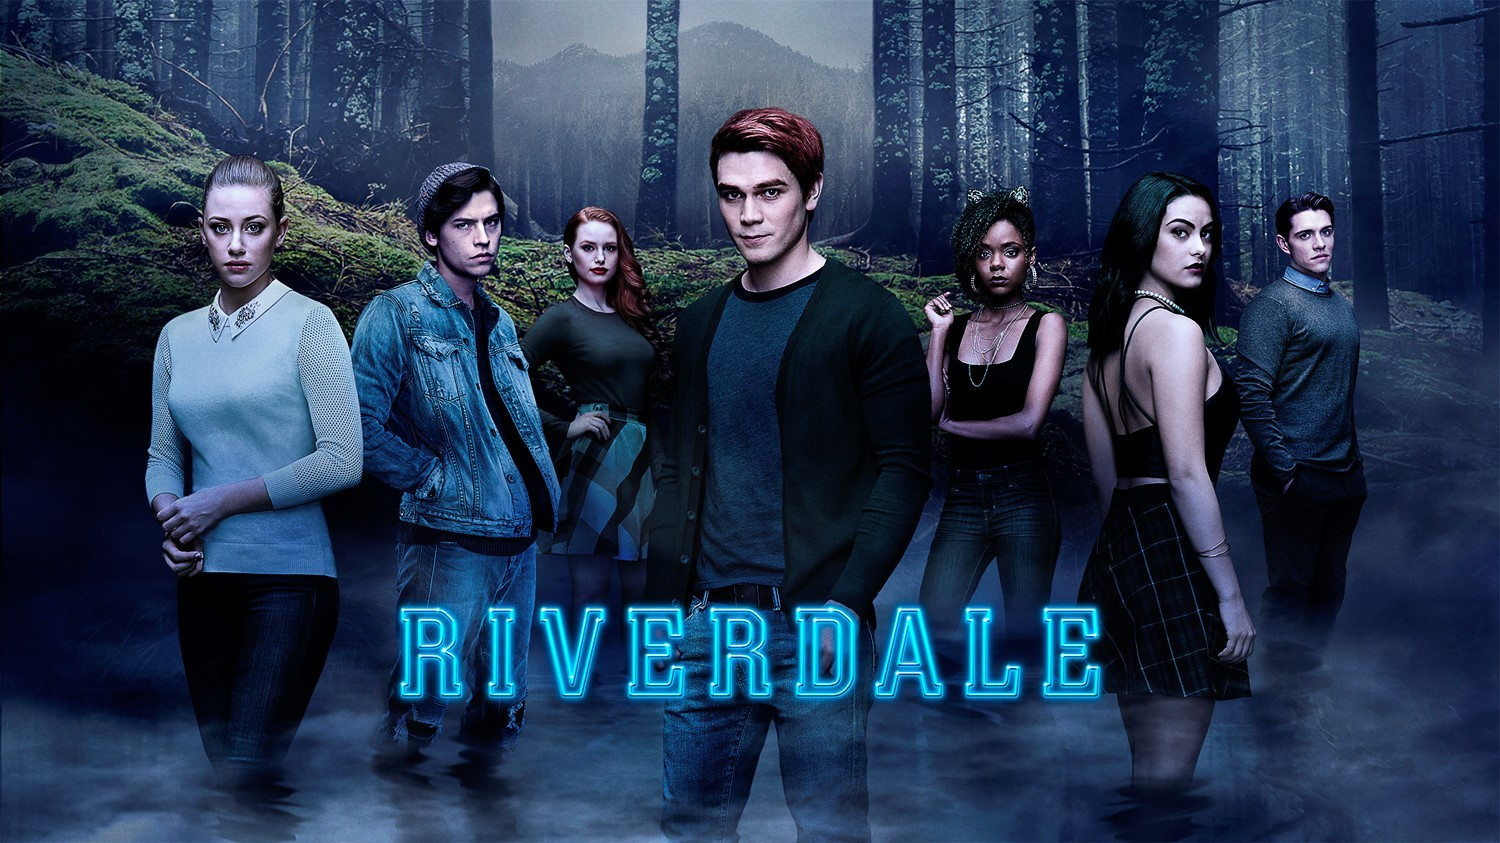 A subversive take on Archie and his friends exploring small town life the darkness and weirdness bubbling beneath Riverdales wholesome facade